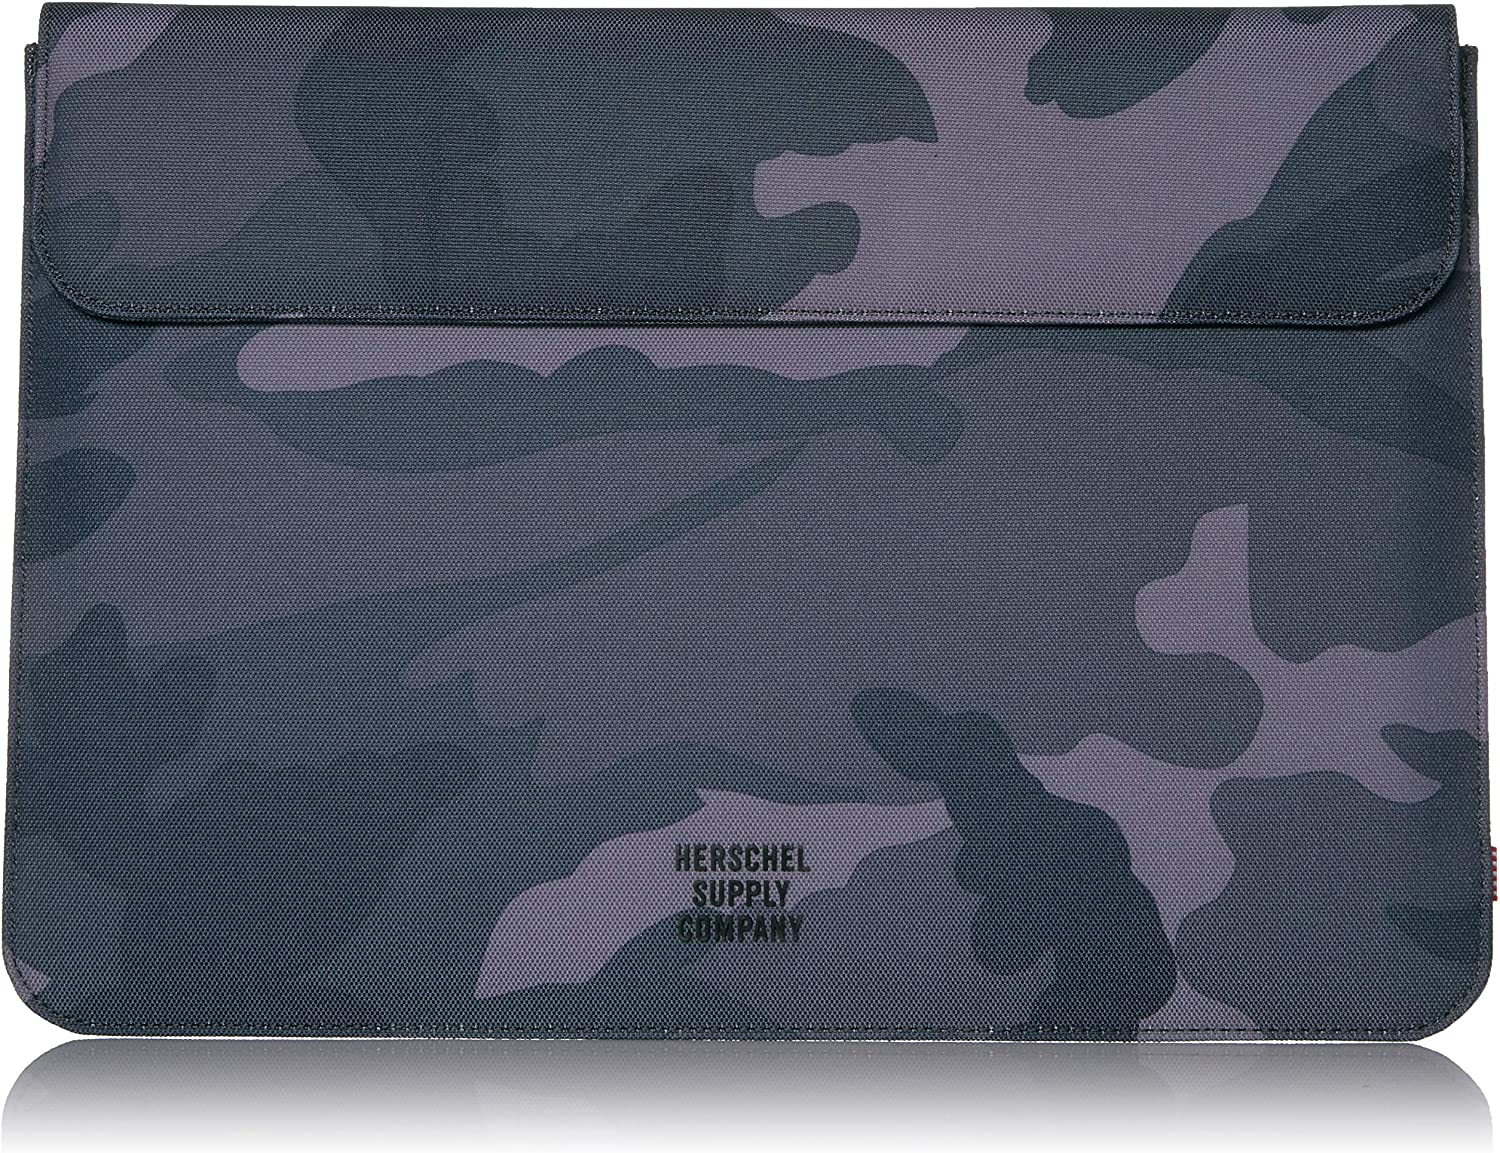 Herschel Spokane Sleeve for MacBook/iPad, Night Camo, 13-Inch